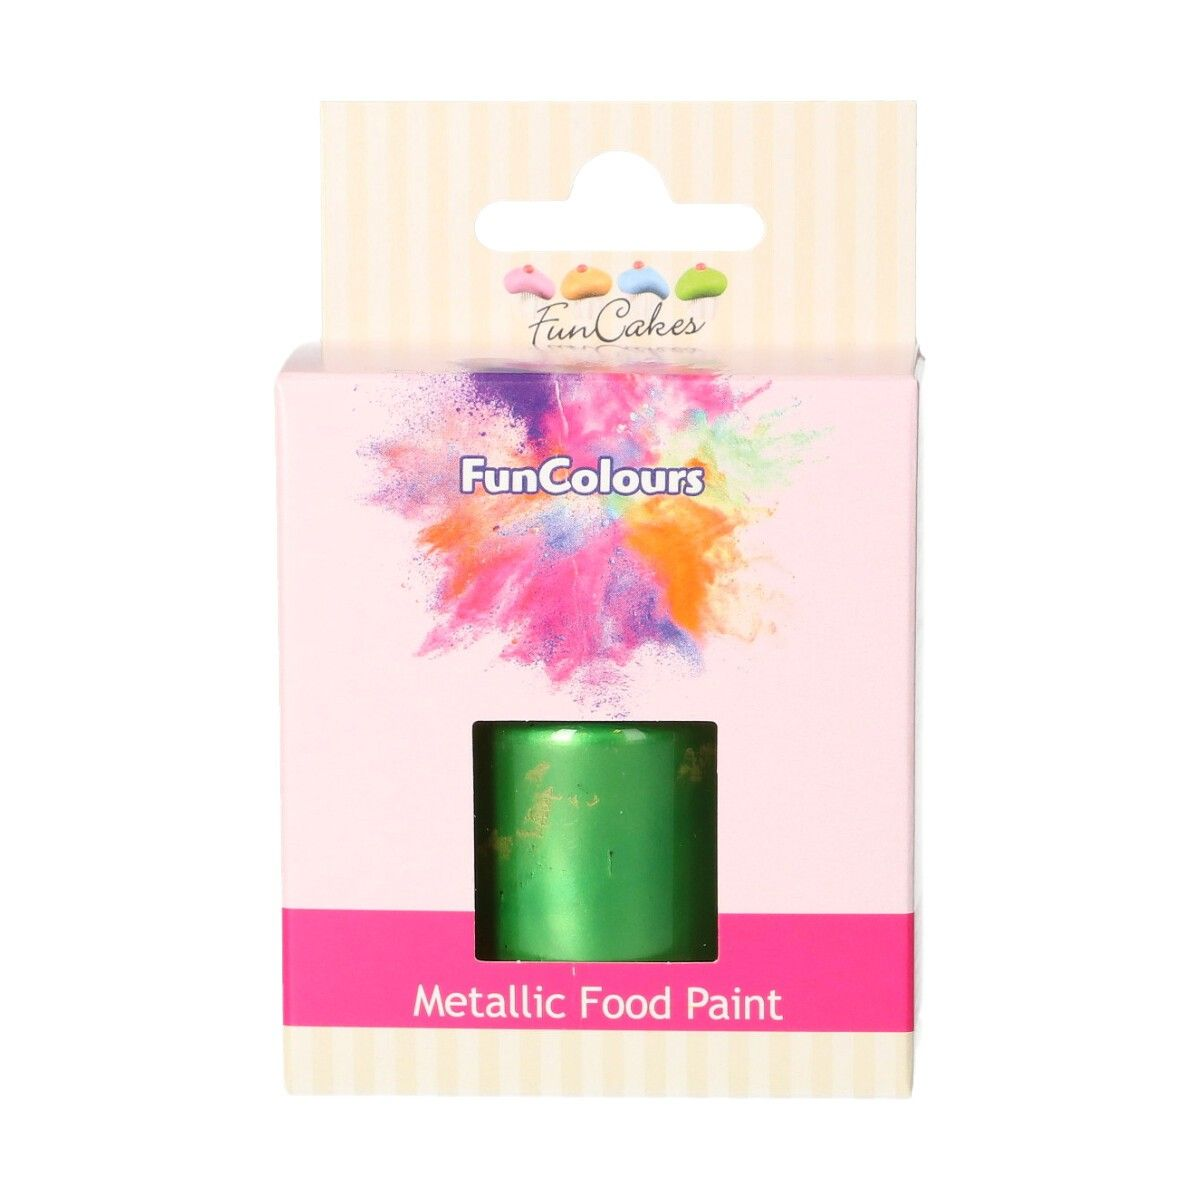 FunCakes Metallic Food Paint Bright Green 30ml